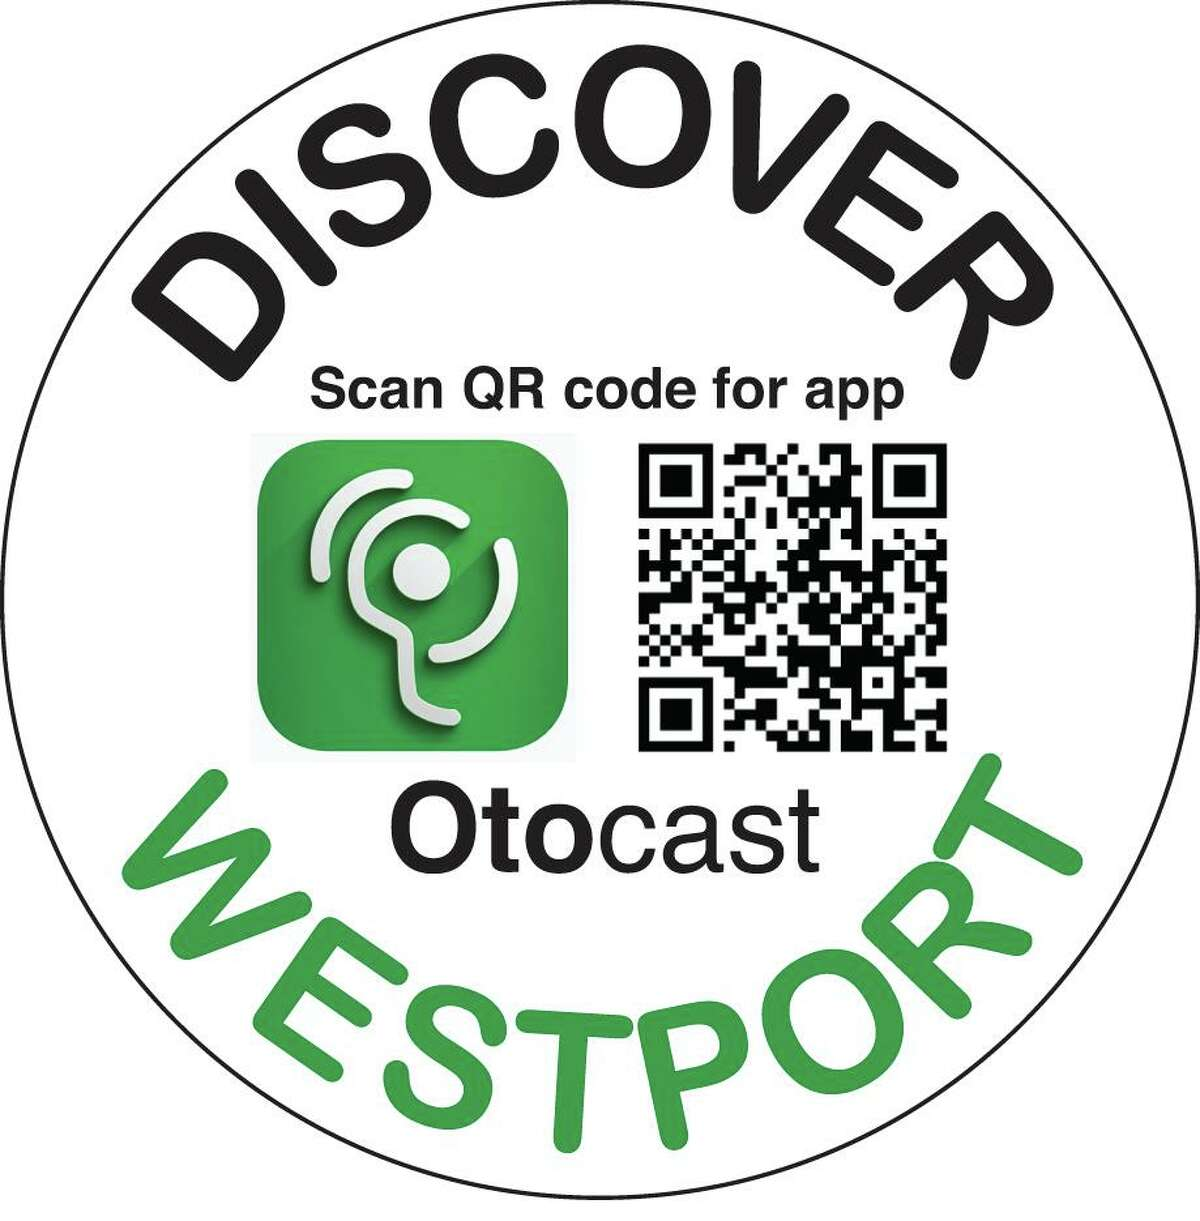 Look for this sticker around town, identifying points of interests on Otocast, and aim your iPhone or Android camera at the QR code to get the app.